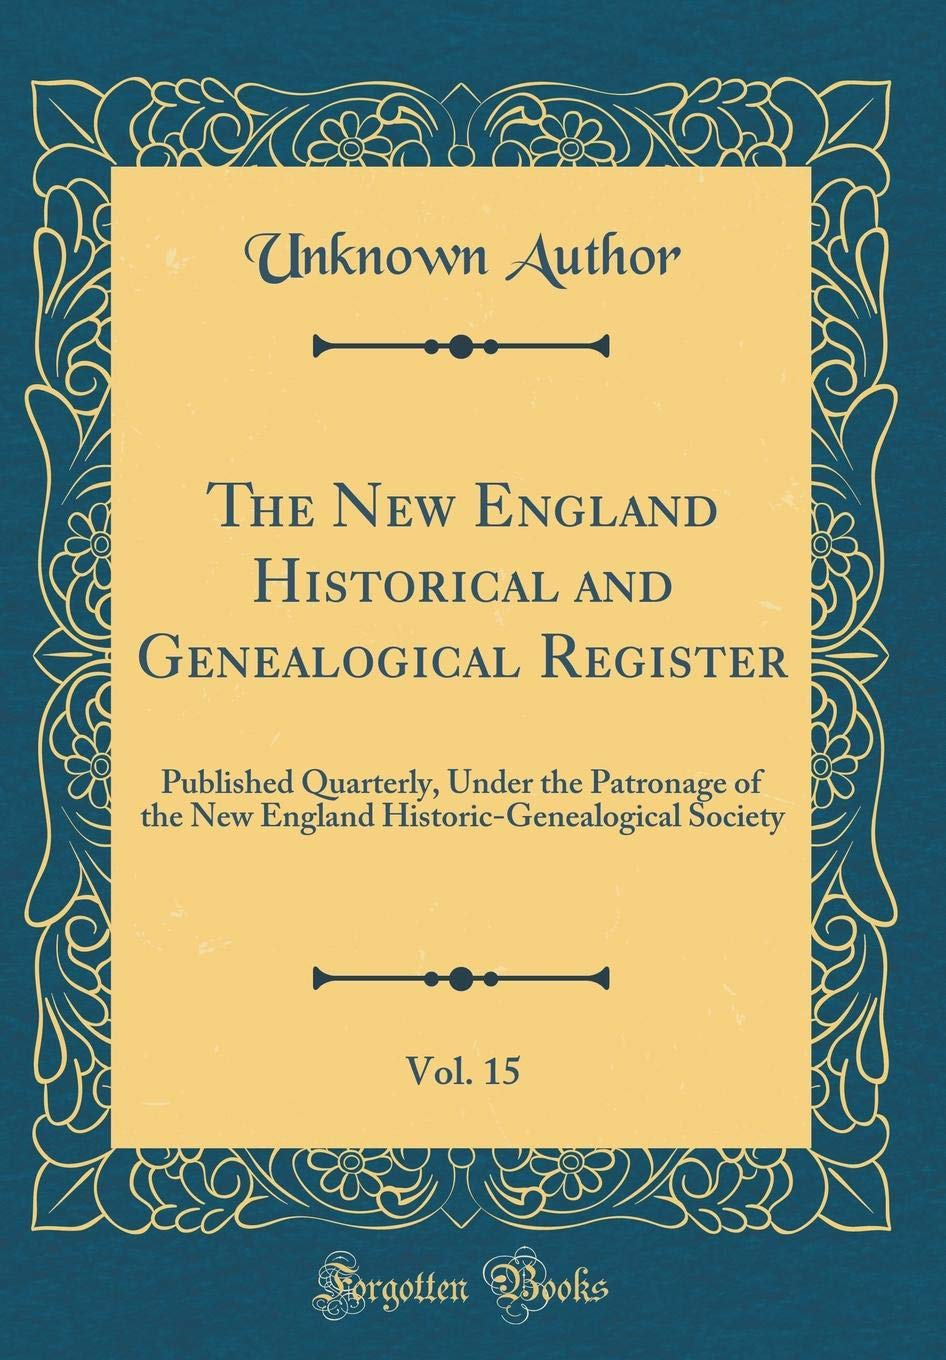 Download The New England Historical and Genealogical Register, Vol. 15: Published Quarterly, Under the Patronage of the New England Historic-Genealogical Society (Classic Reprint) pdf epub